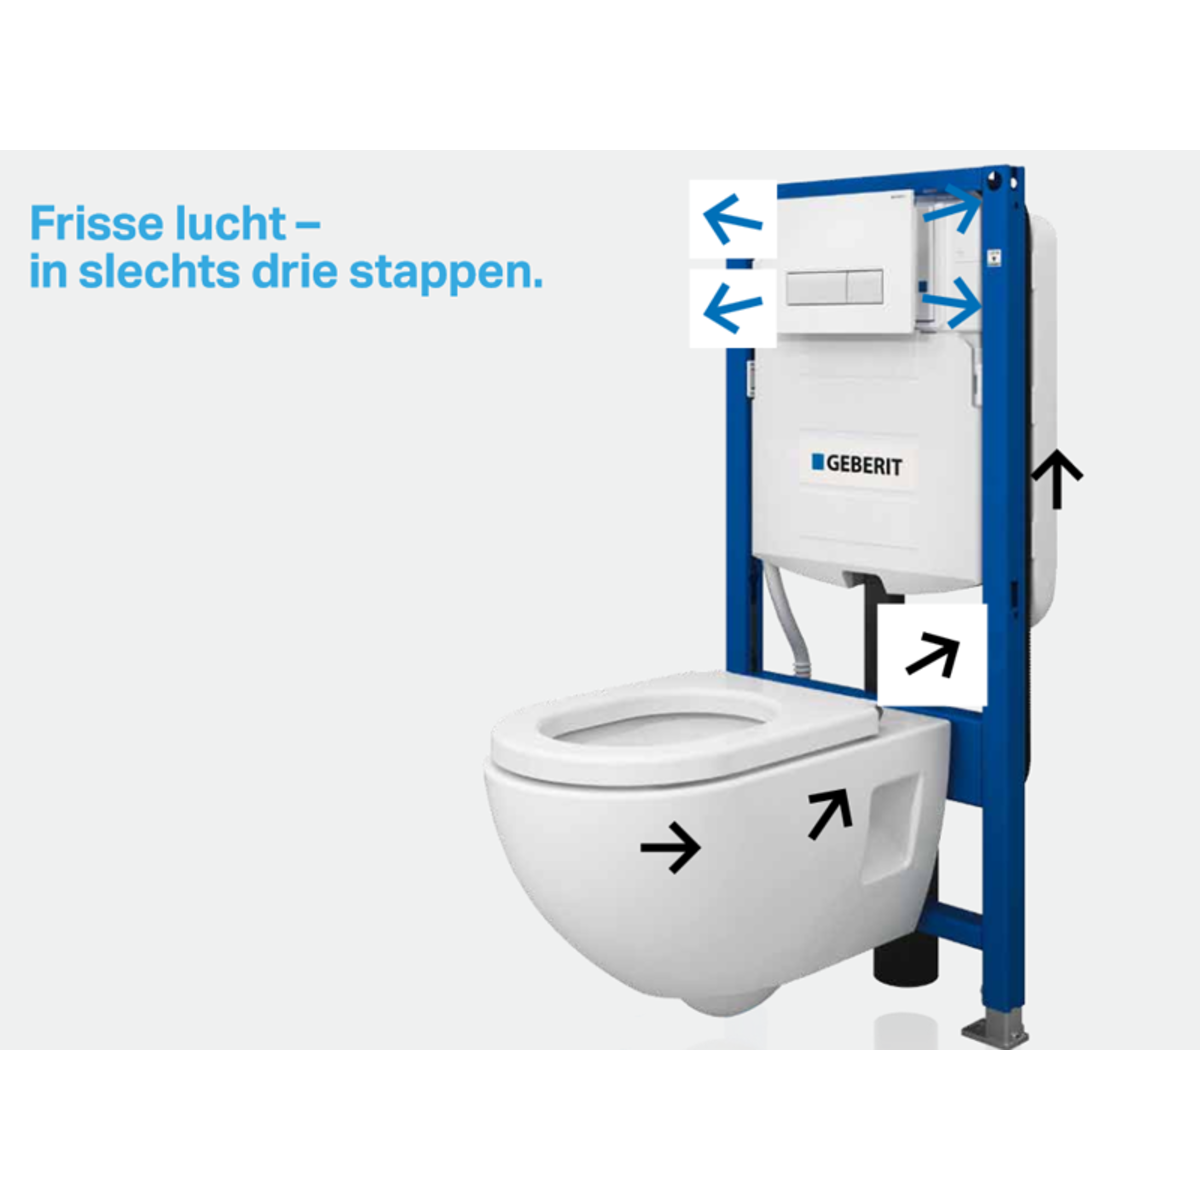 Geberit duofix wc element h112 met reservoir up320 for Geberit products